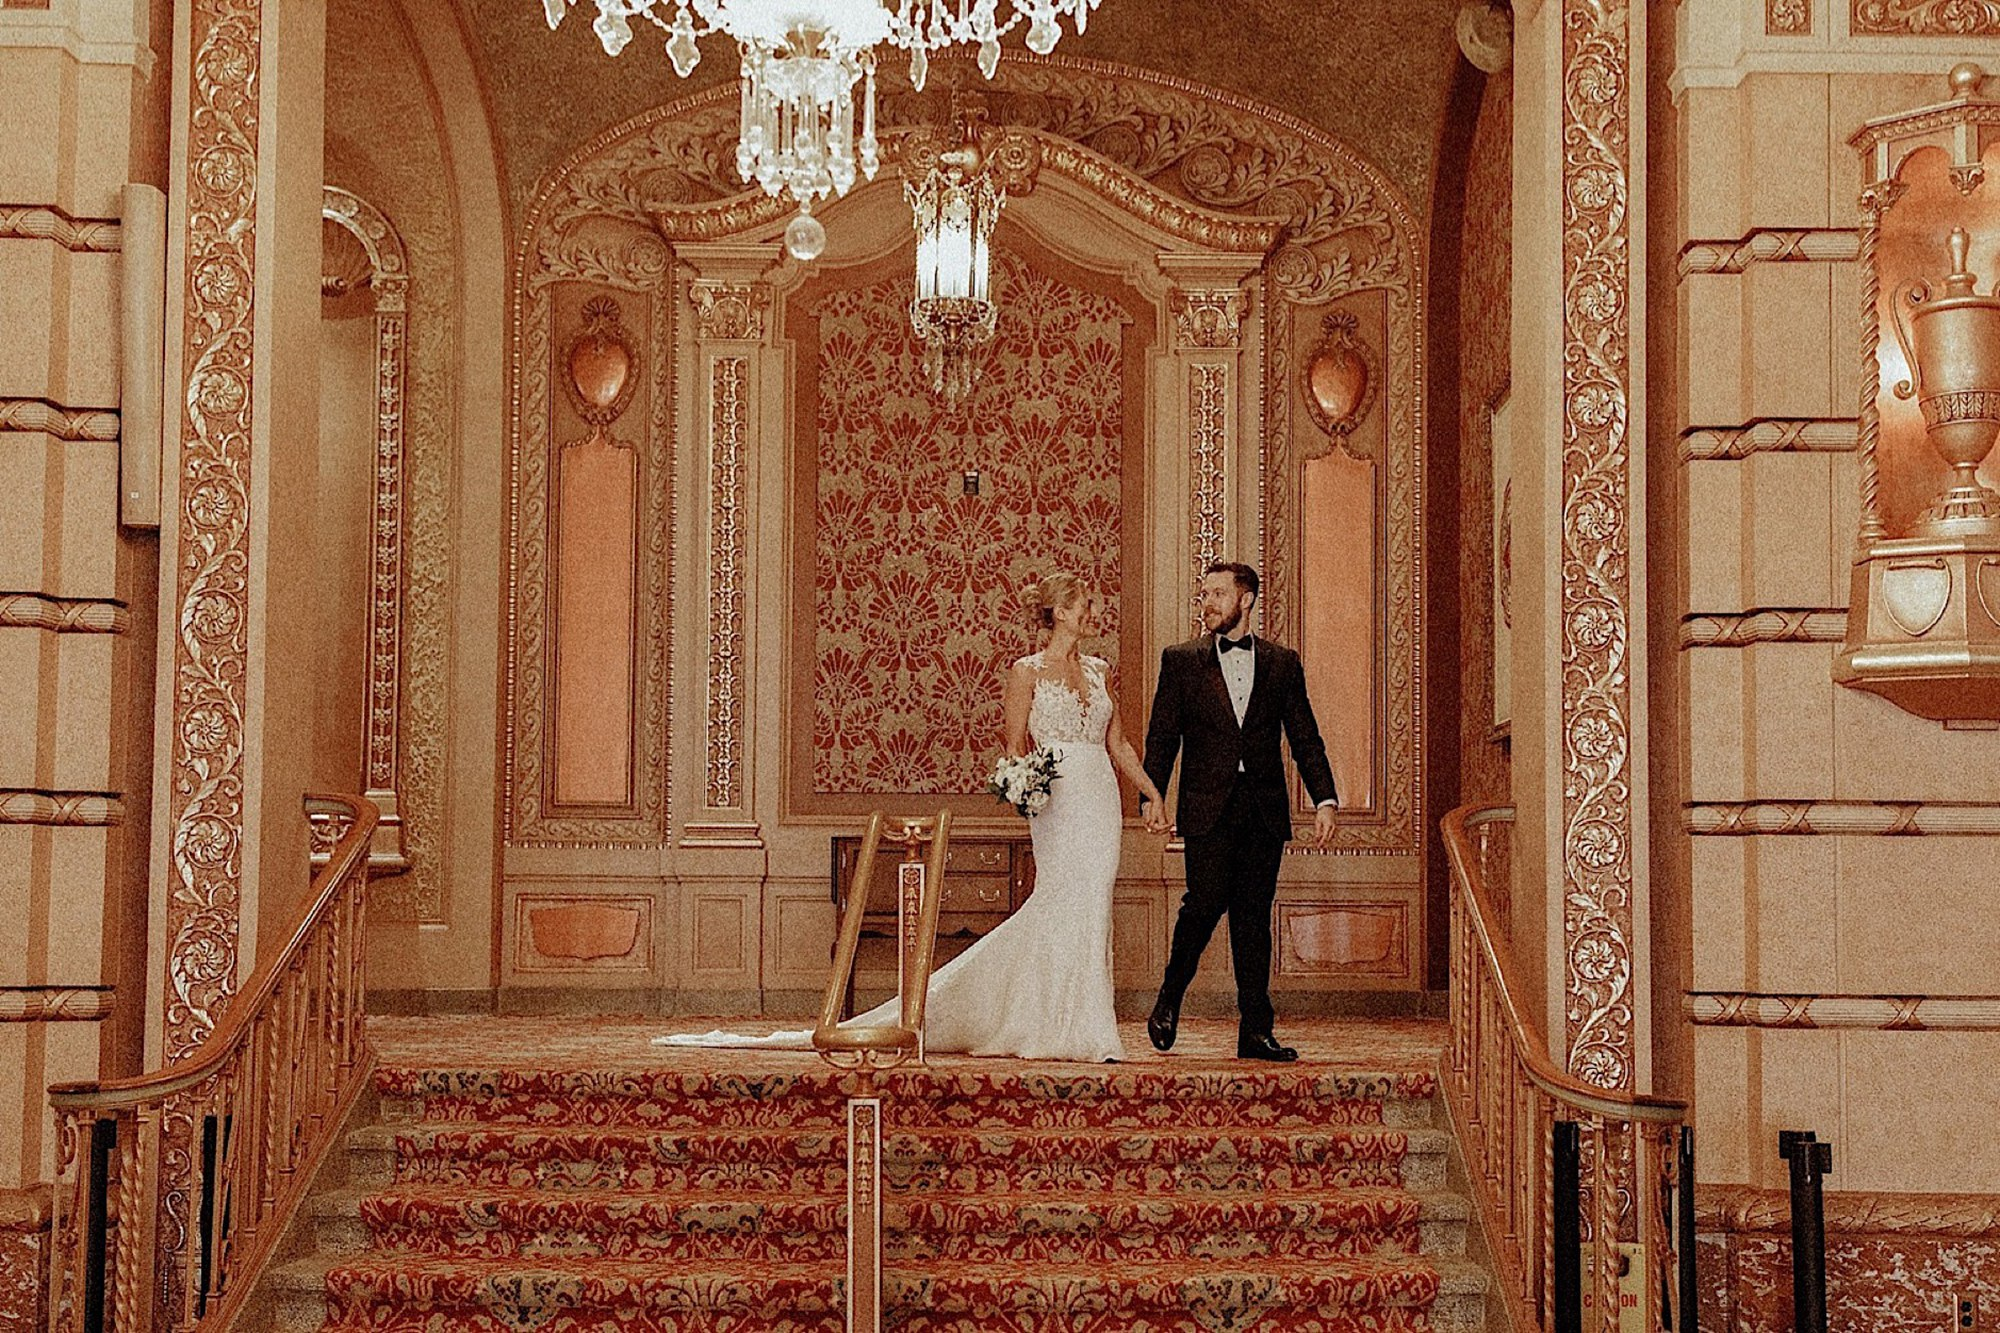 wes Anderson wedding bride and groom in golden historic paramount theater